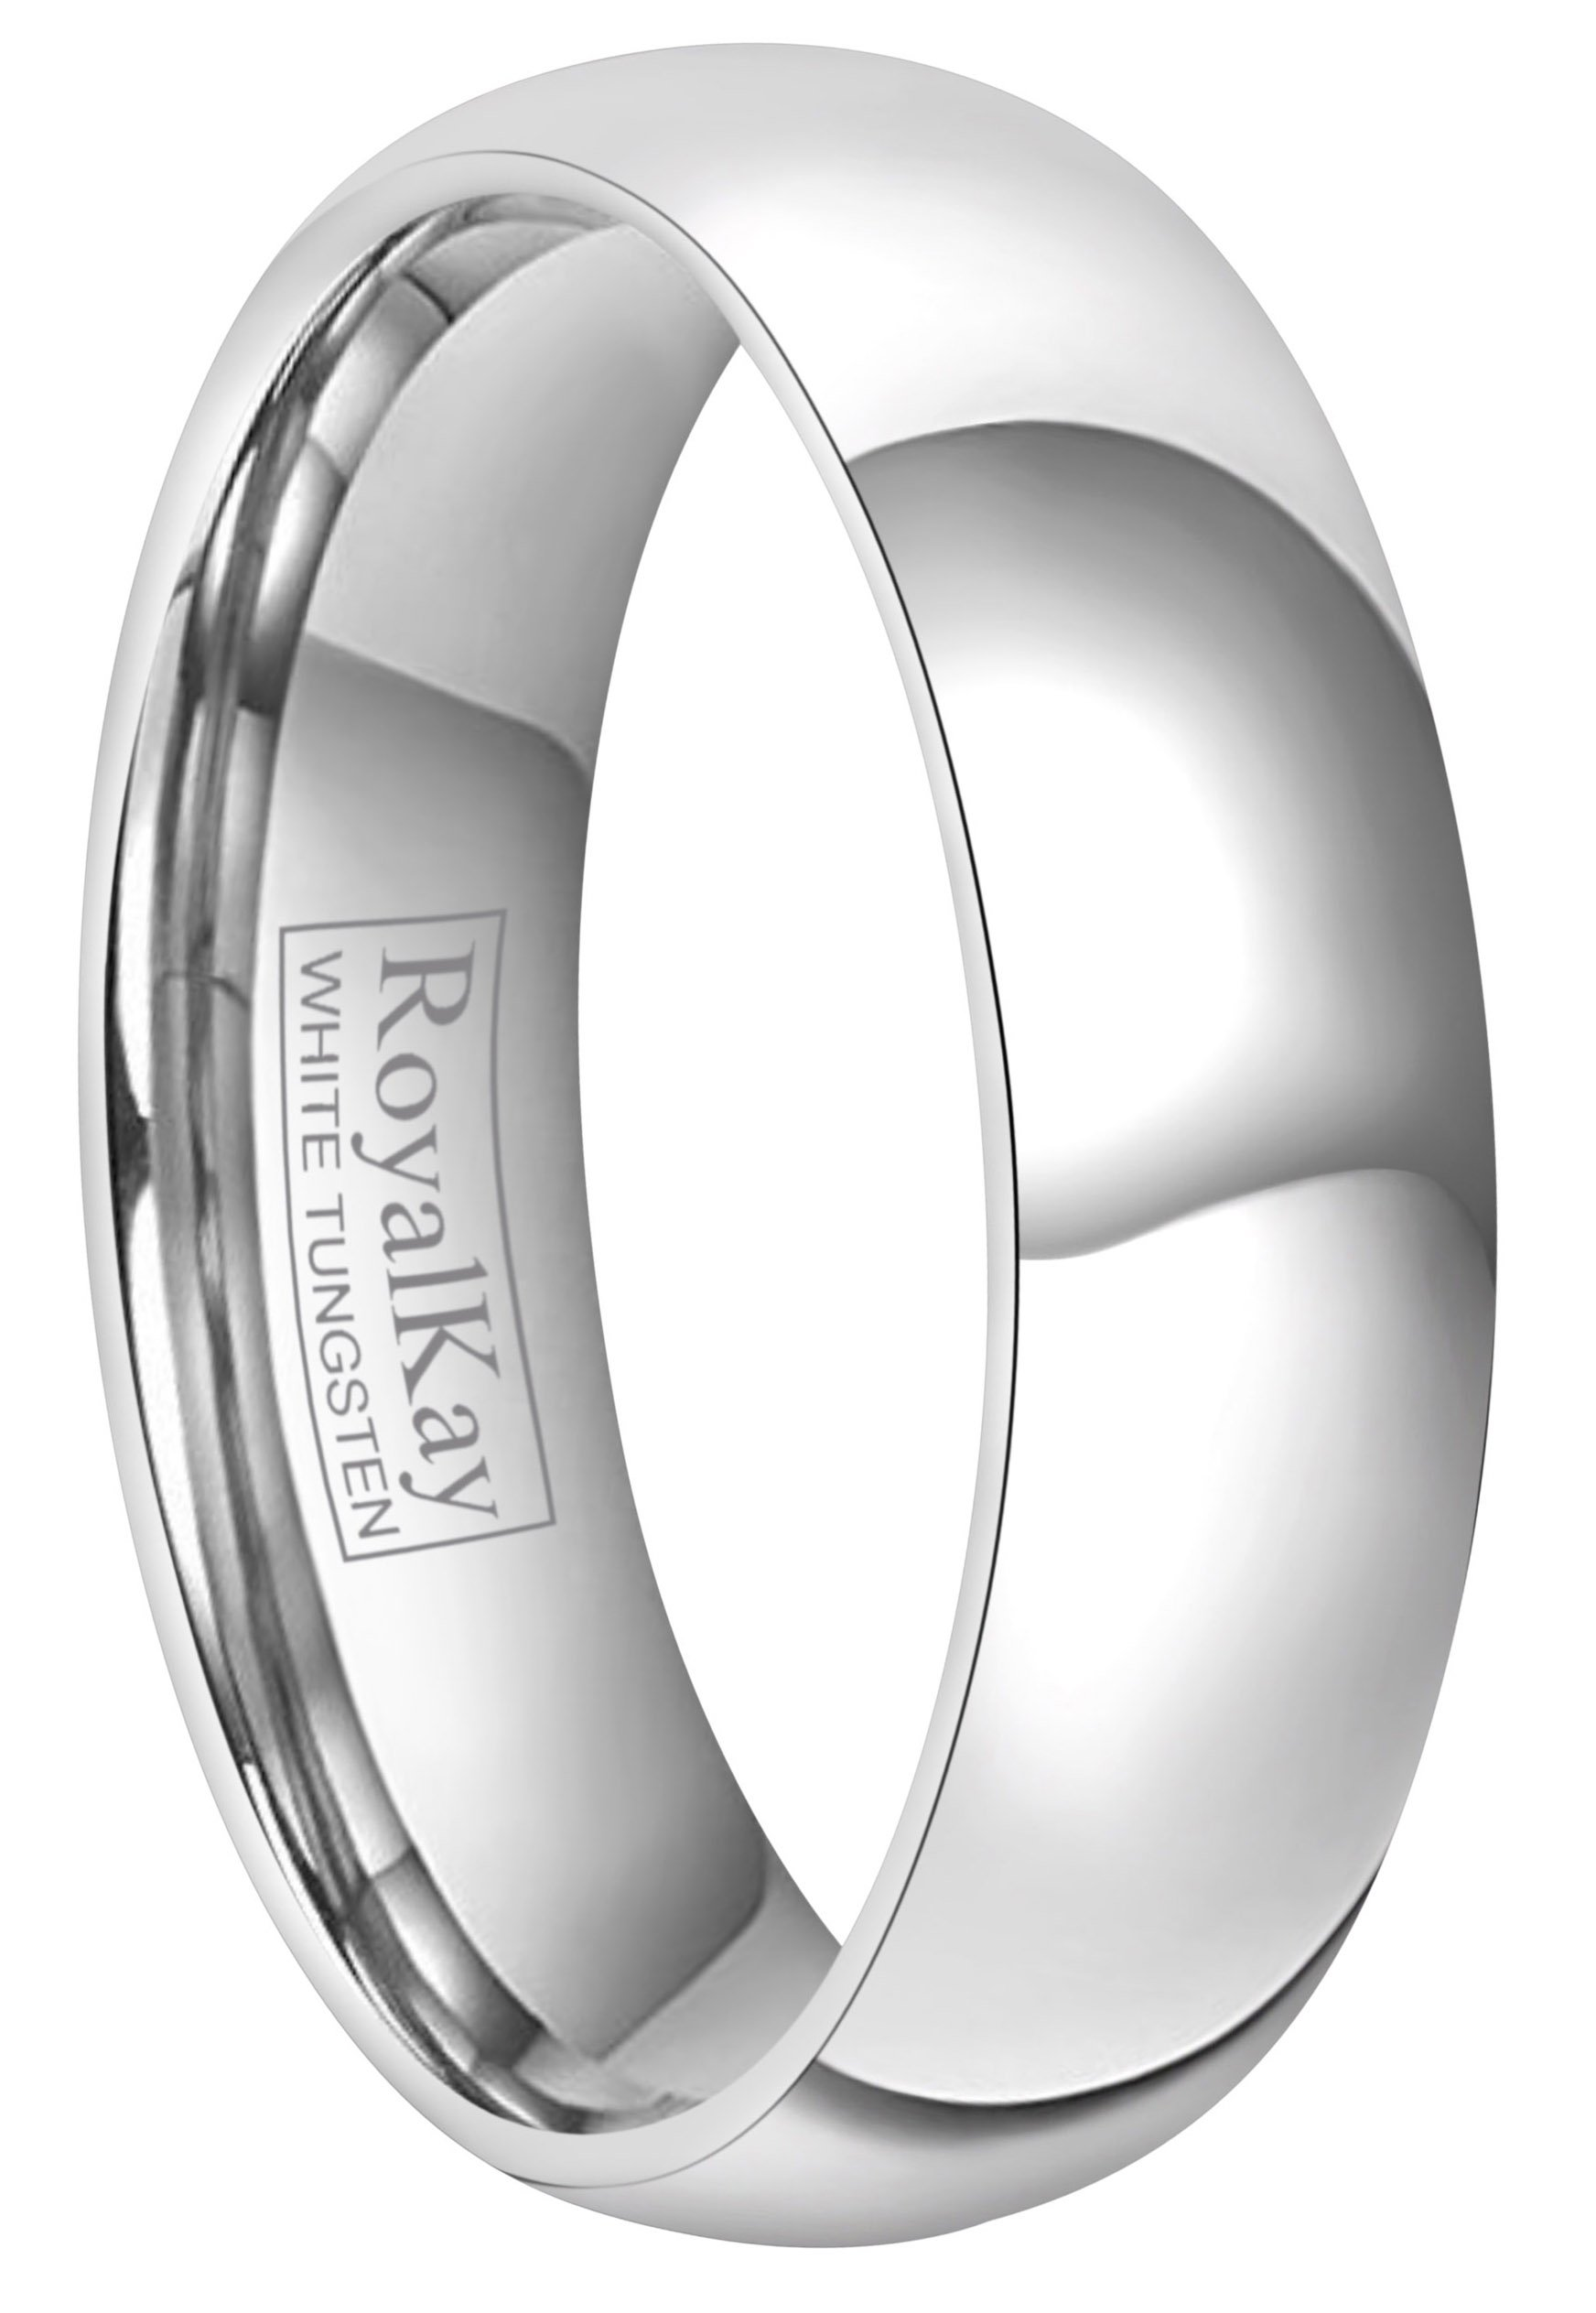 RoyalKay 2mm 4mm 6mm White Tungsten Wedding Band Ring Men Women Plain Dome High Polished Comfort Fit Size 3 To 17 (6mm,9)